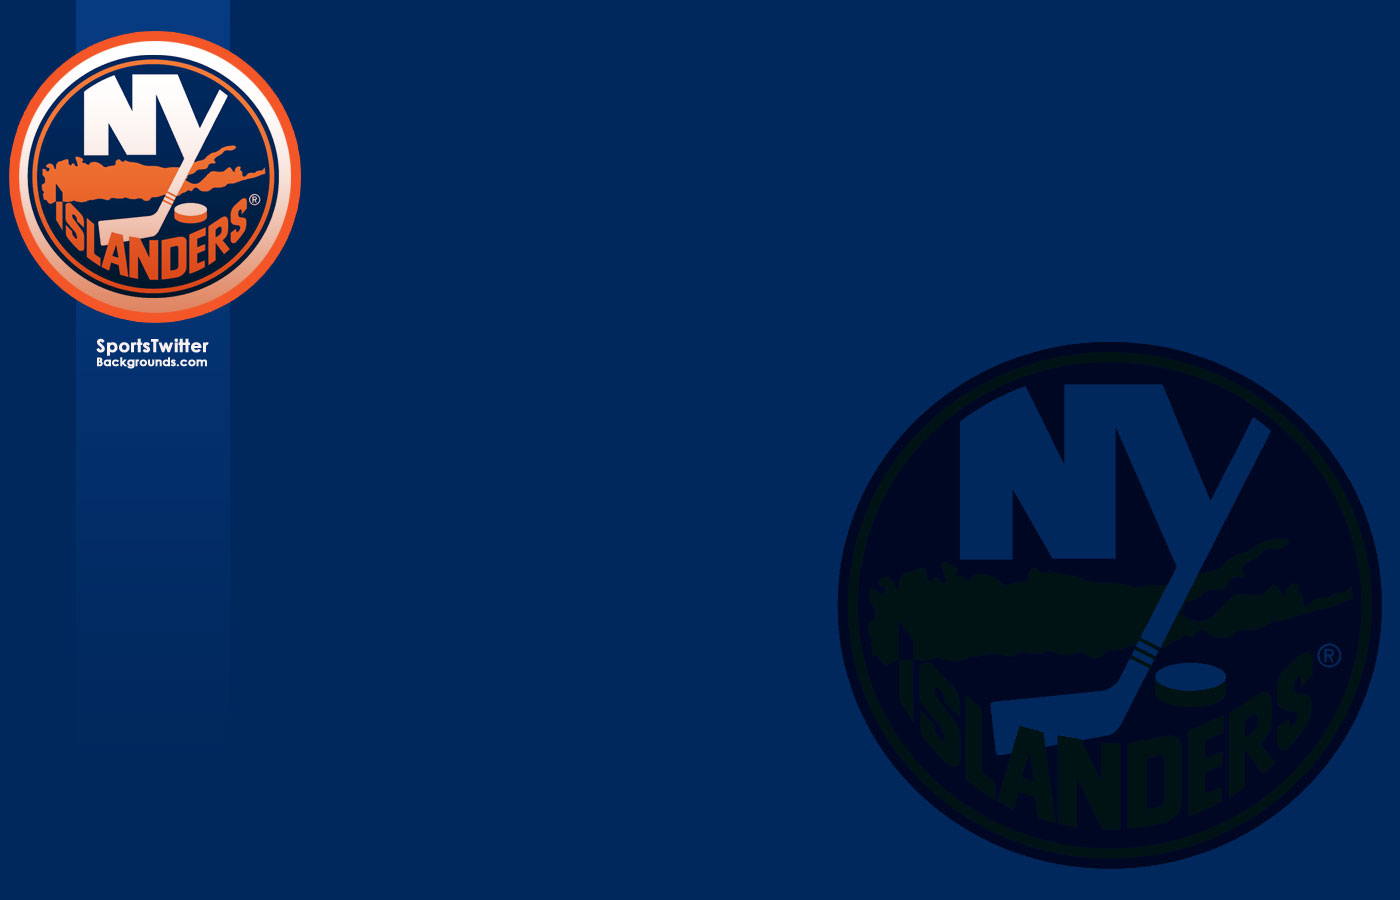 New York Islanders wallpapers New York Islanders background   Page 3 1400x900